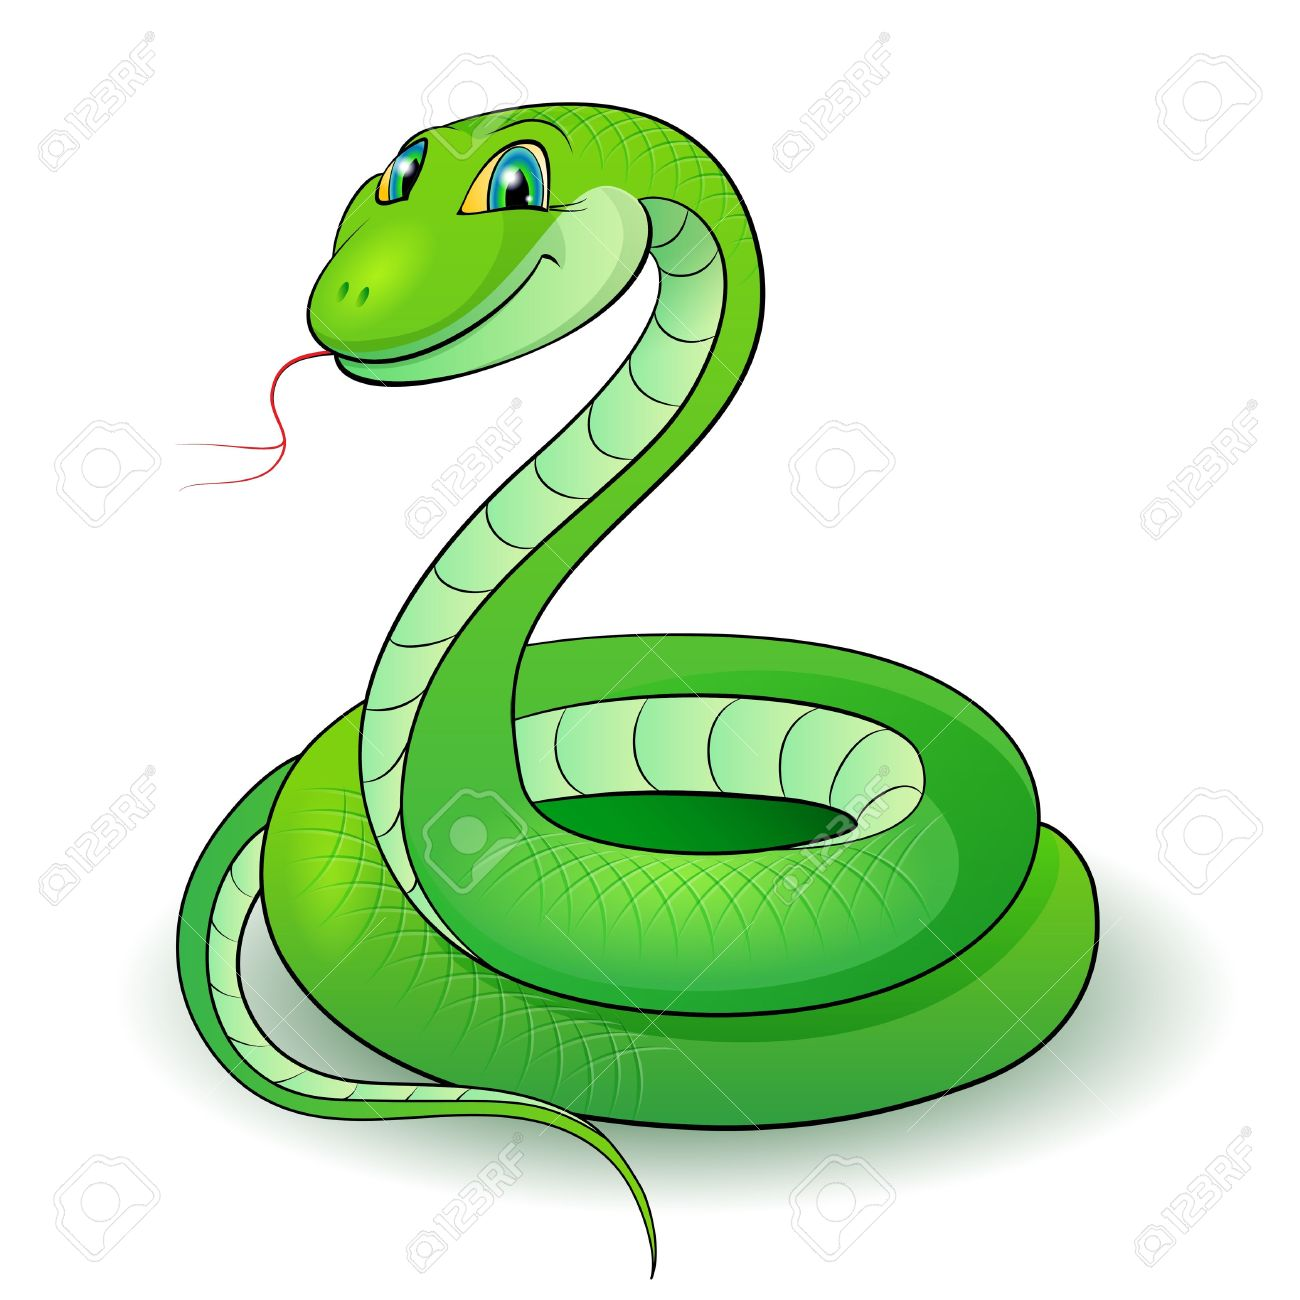 Smooth Green Snake clipart #8, Download drawings